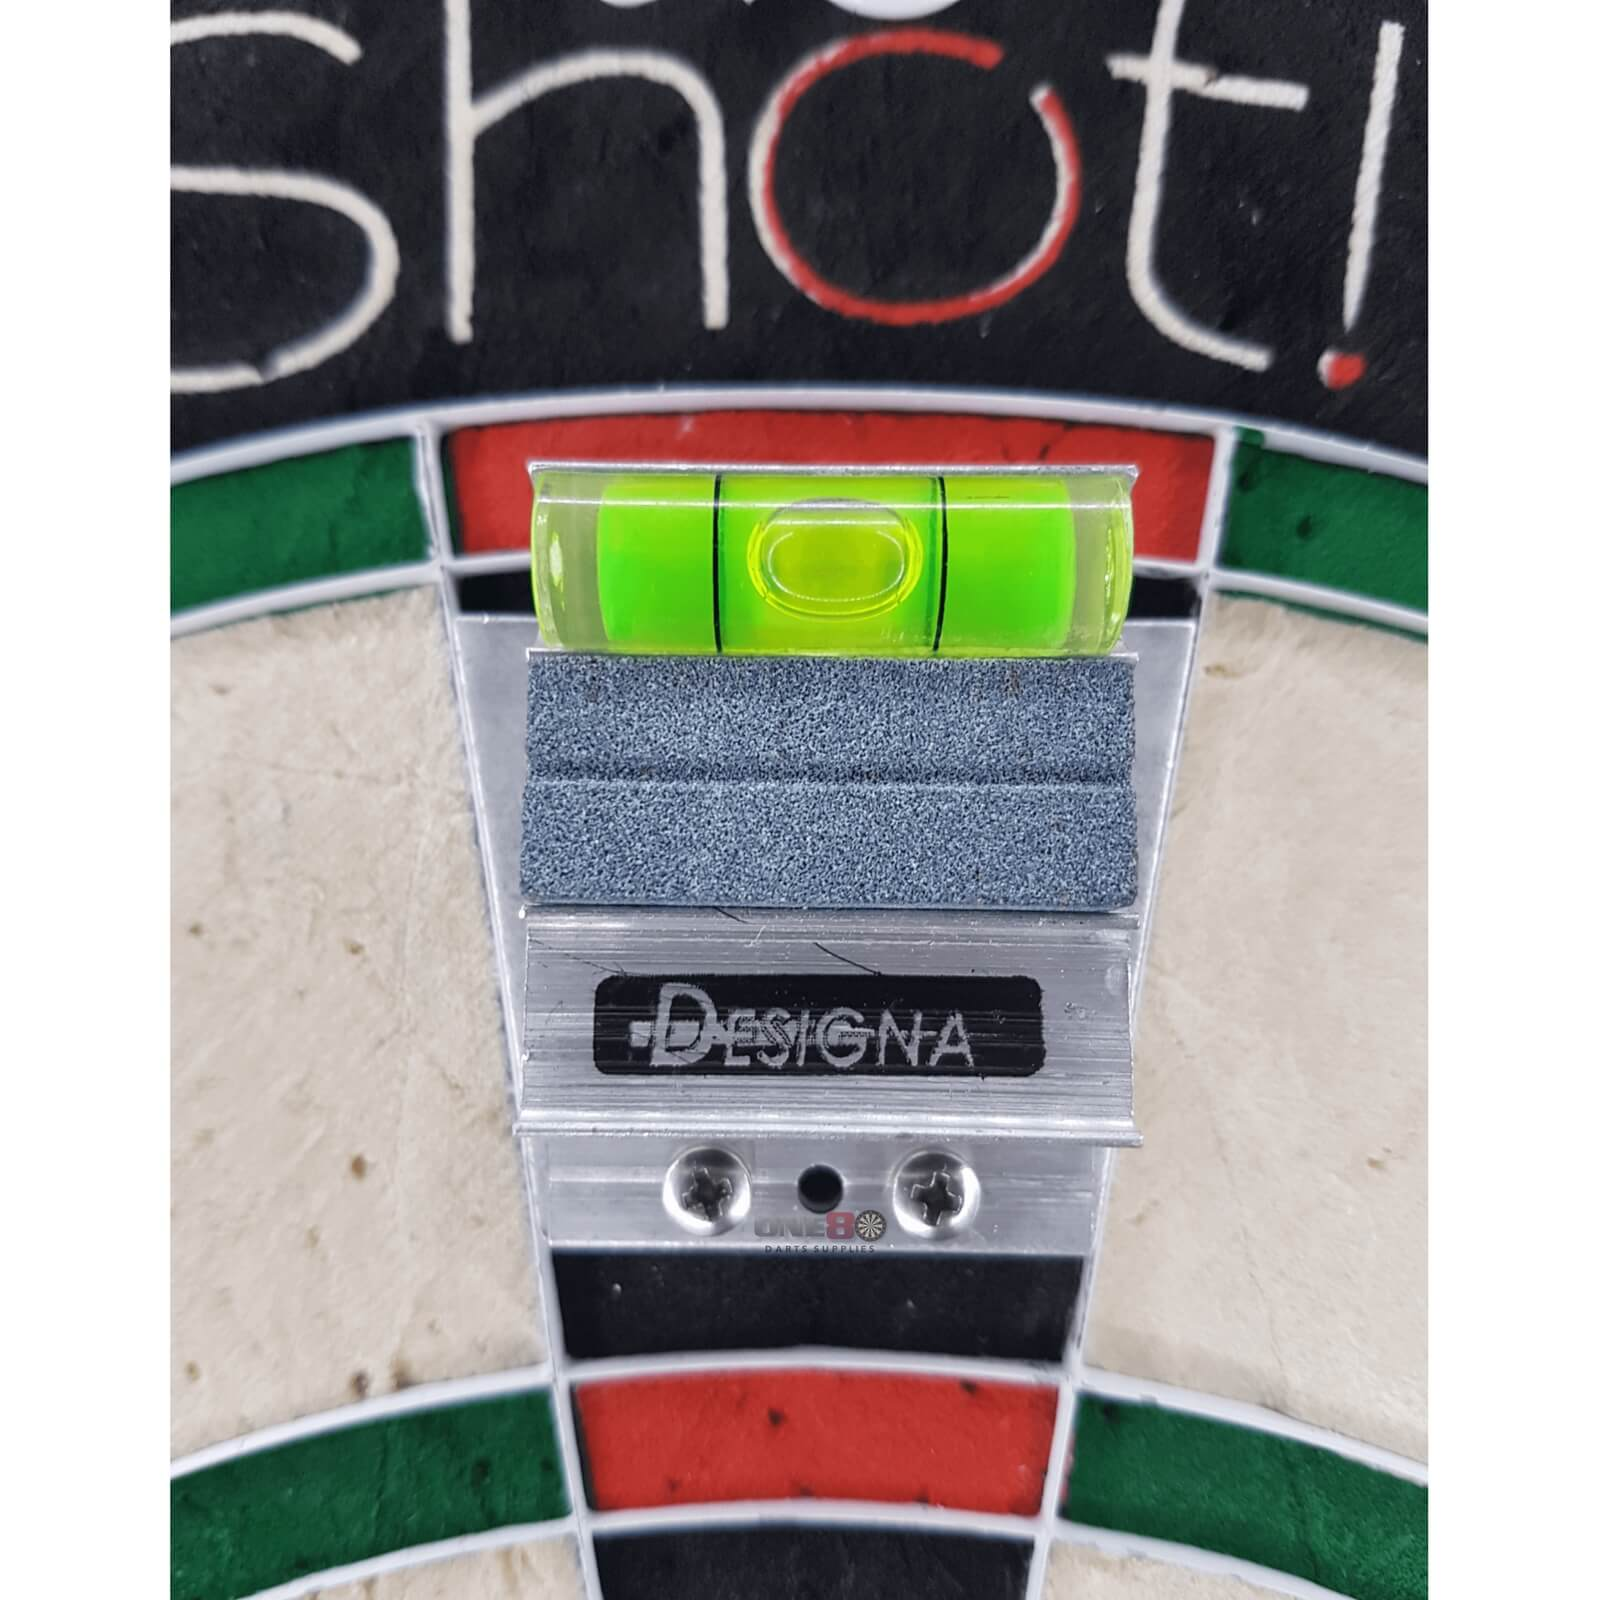 Dartboard Accessories - Designa - Pro Aluminium Dartboard Referee Tool